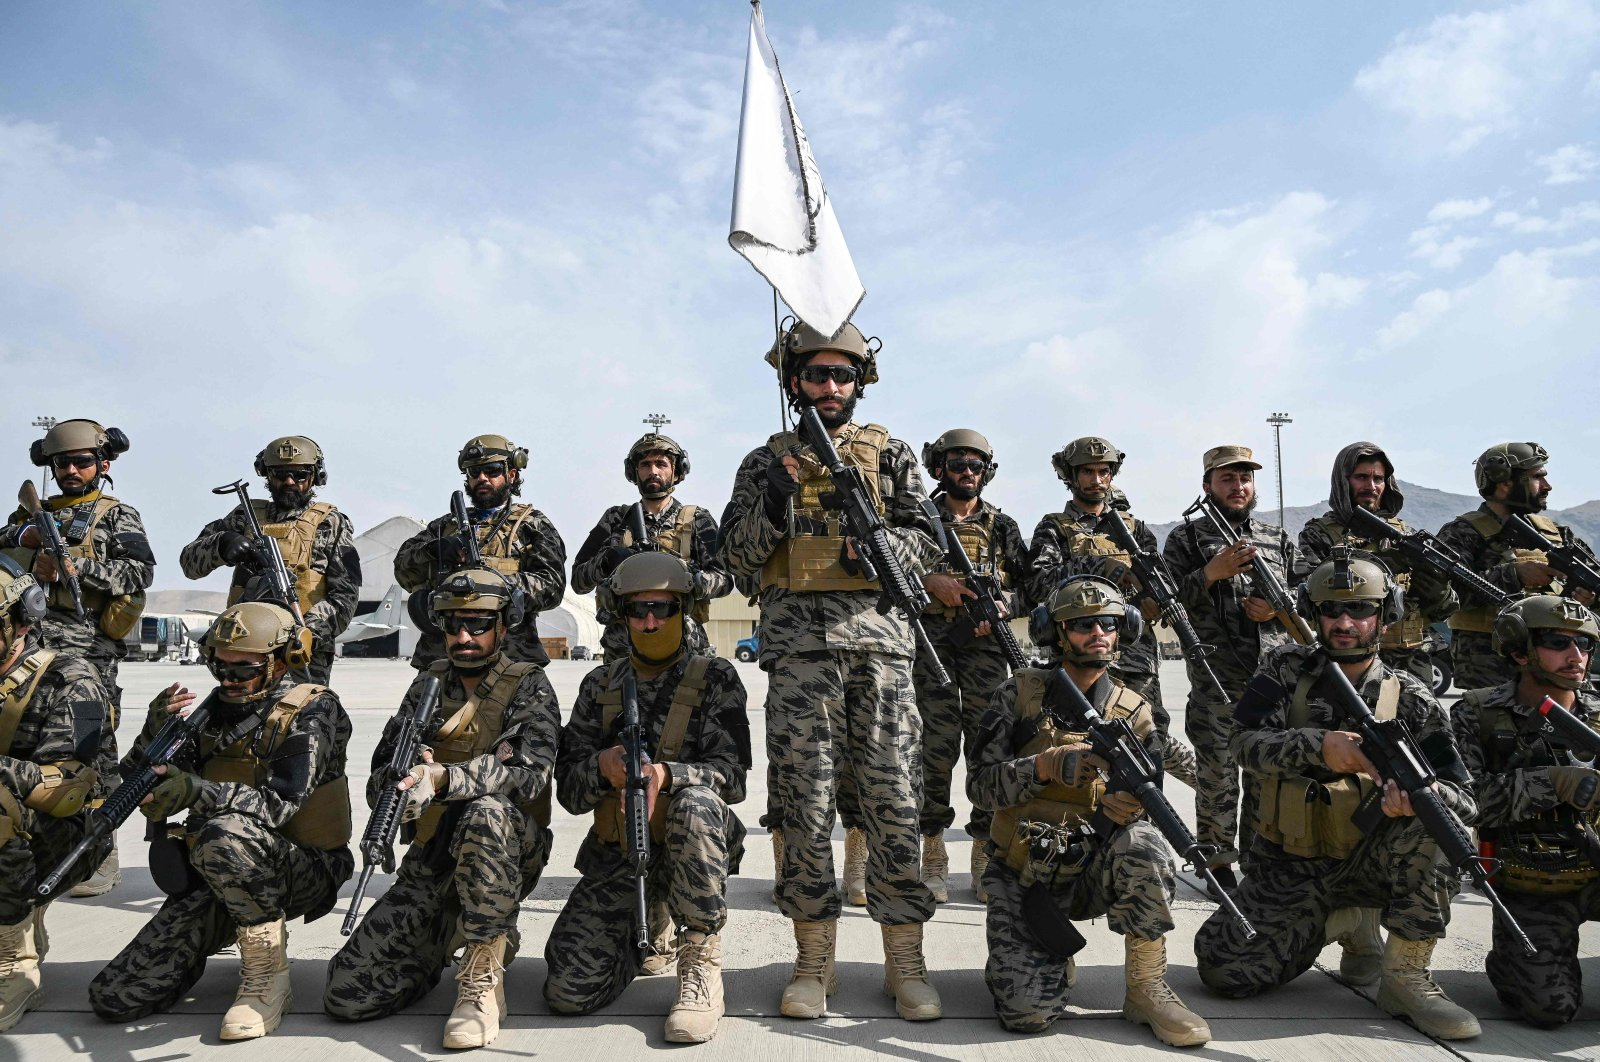 Taliban Badri special force fighters take a position at the airport in Kabul on Aug. 31, 2021, after the U.S. pulled all its troops out of the country to end a brutal 20-year war. (AFP Photo)